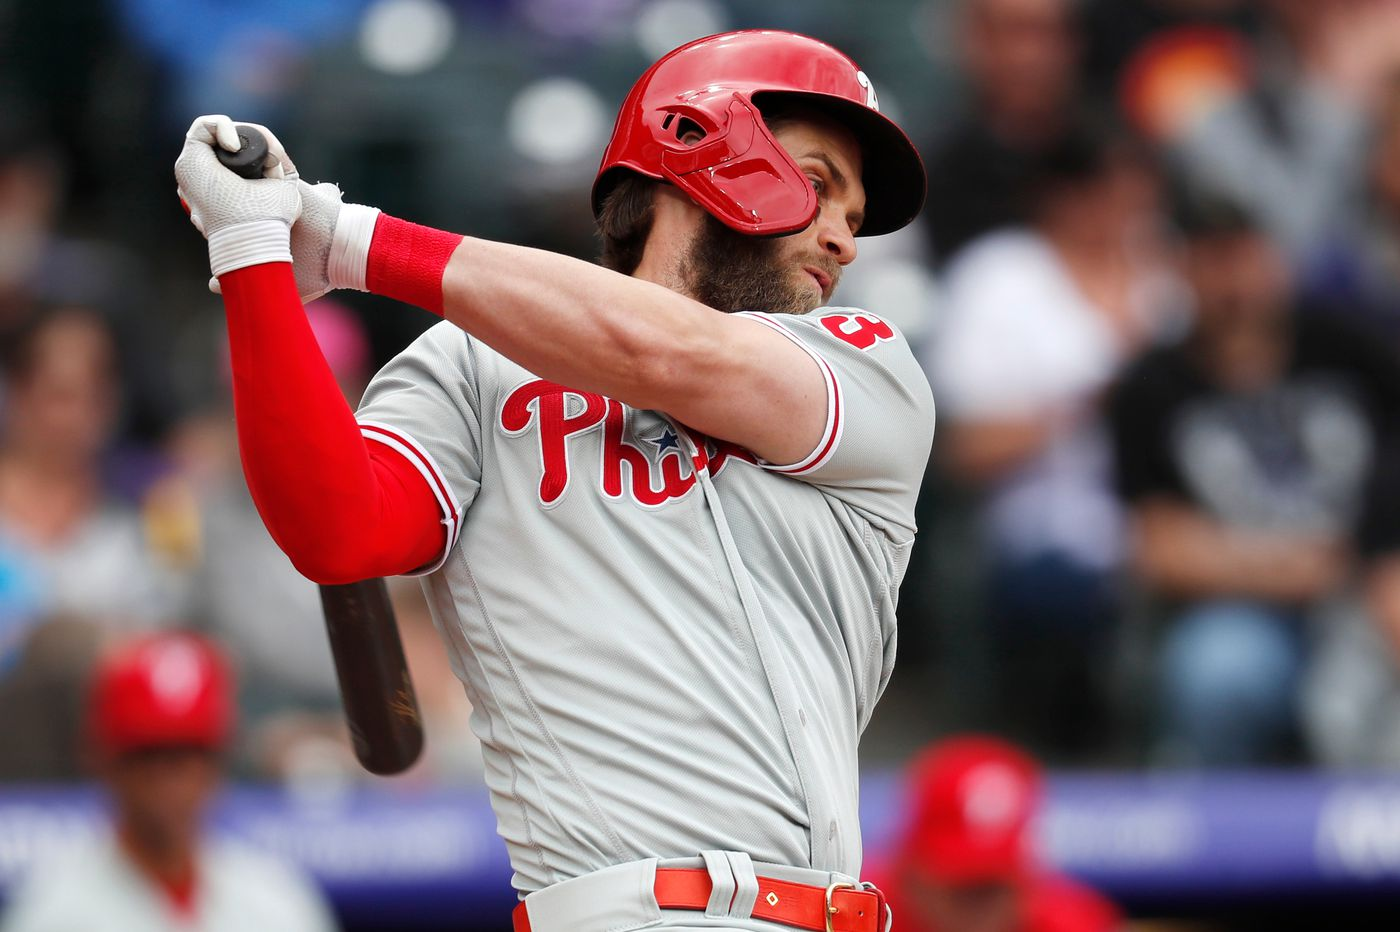 Phillies lose, 4-1, to drop three of four to Rockies after late rally falls short